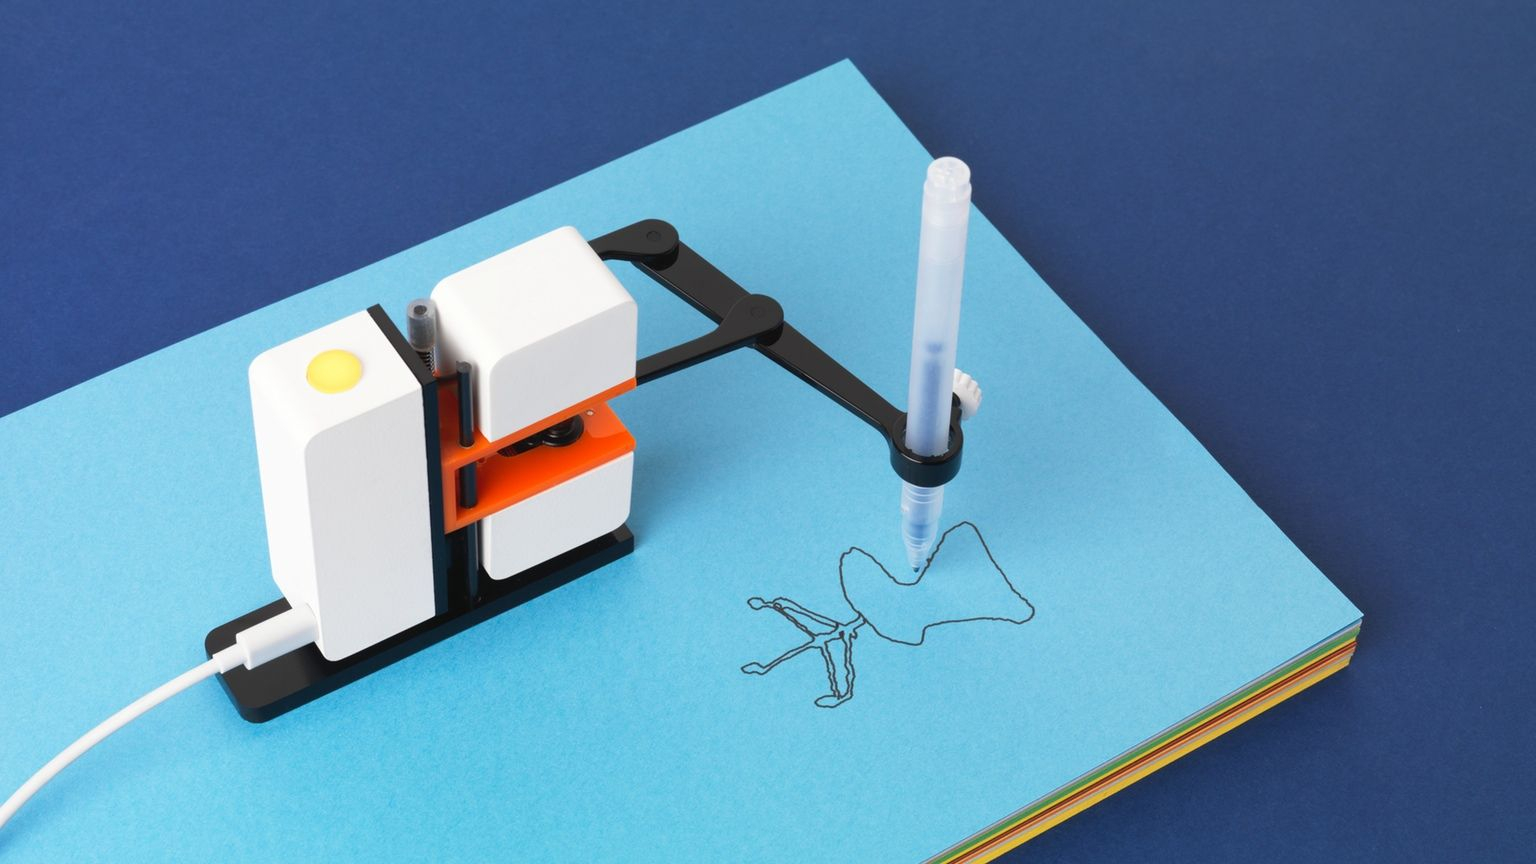 A small robot arm that draws with a pen on paper anything you draw